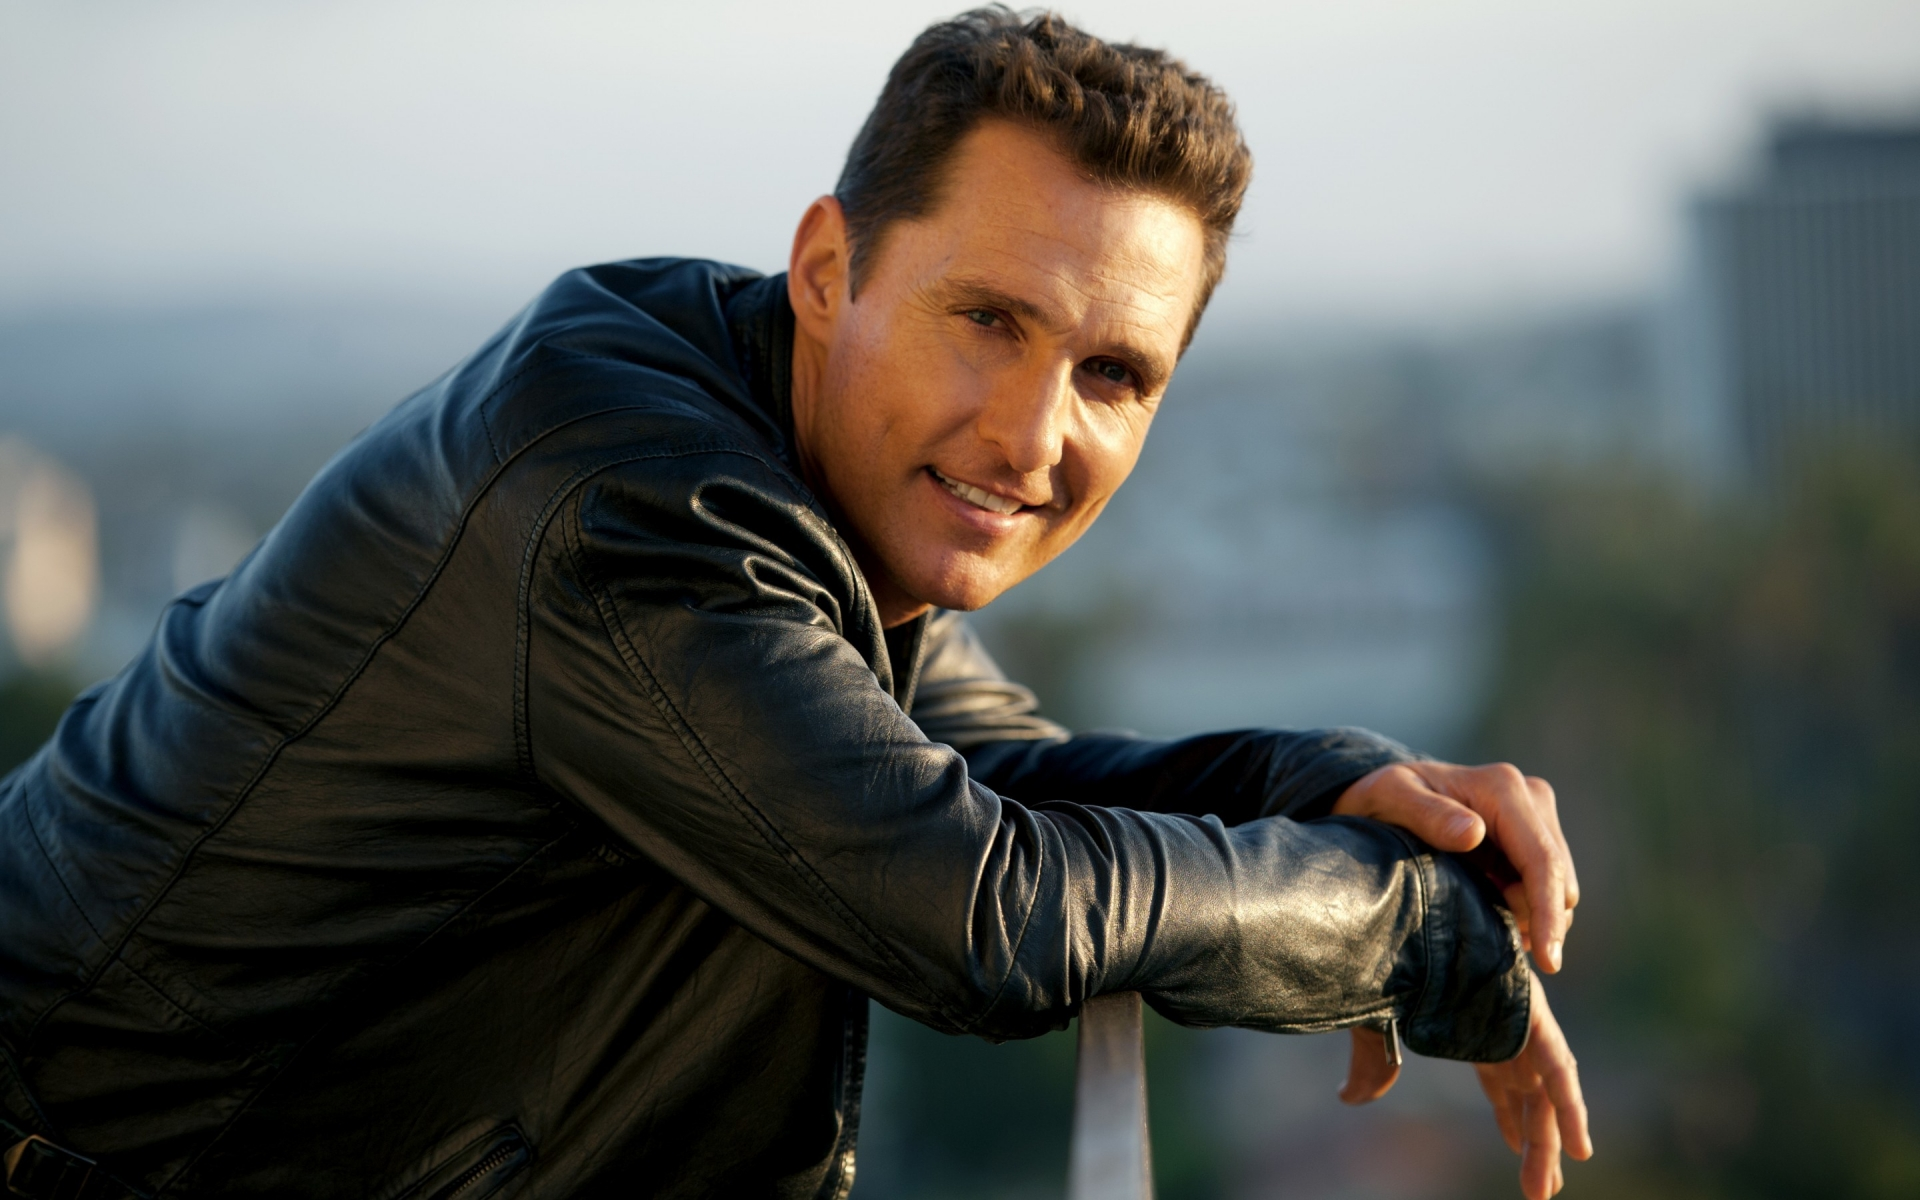 Cool Matthew McConaughey for 1920 x 1200 widescreen resolution